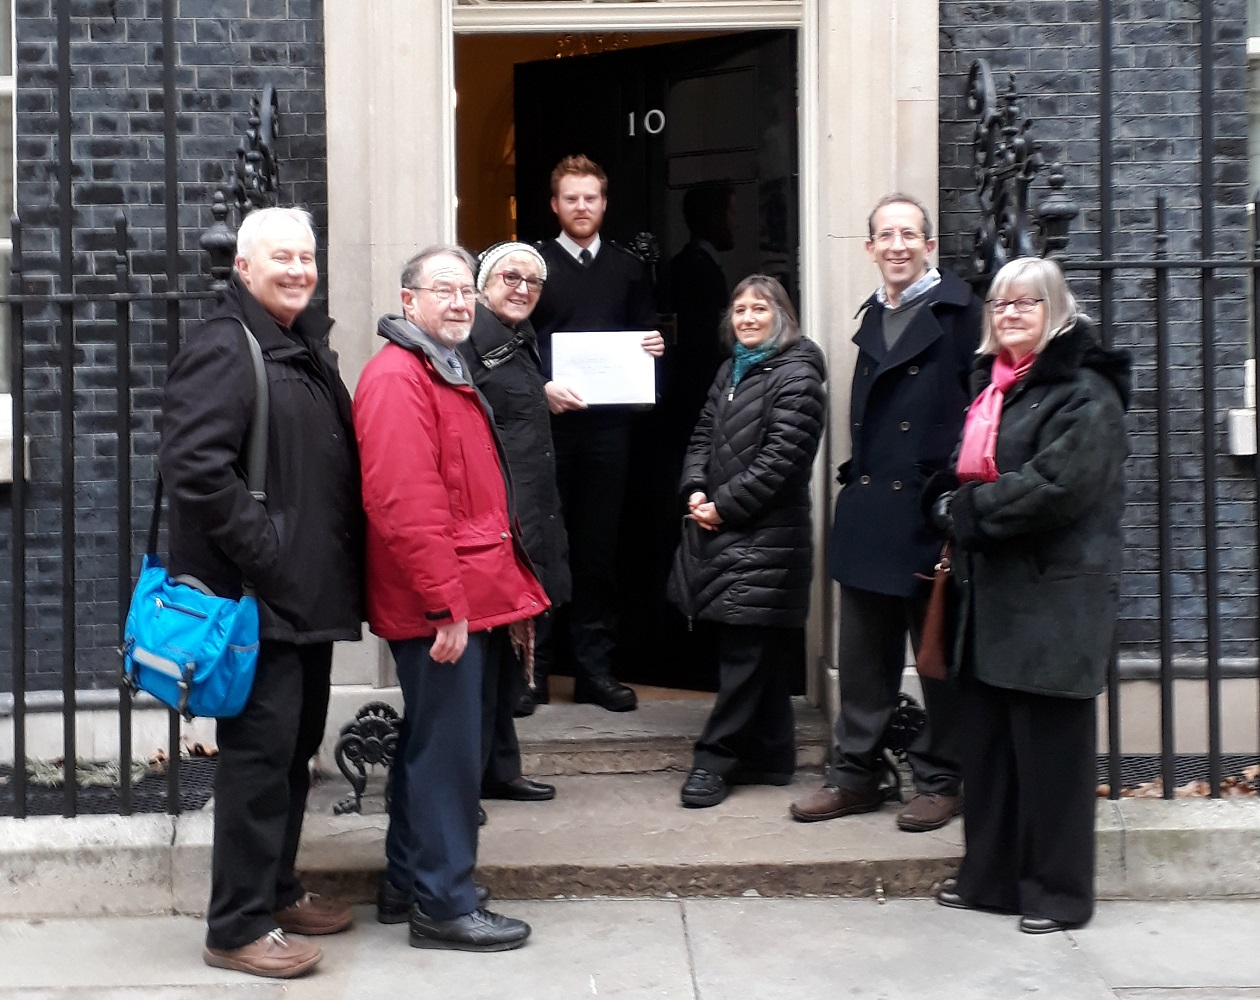 Enfield Town Residents' Association handing in their petition to 10 Downing Street